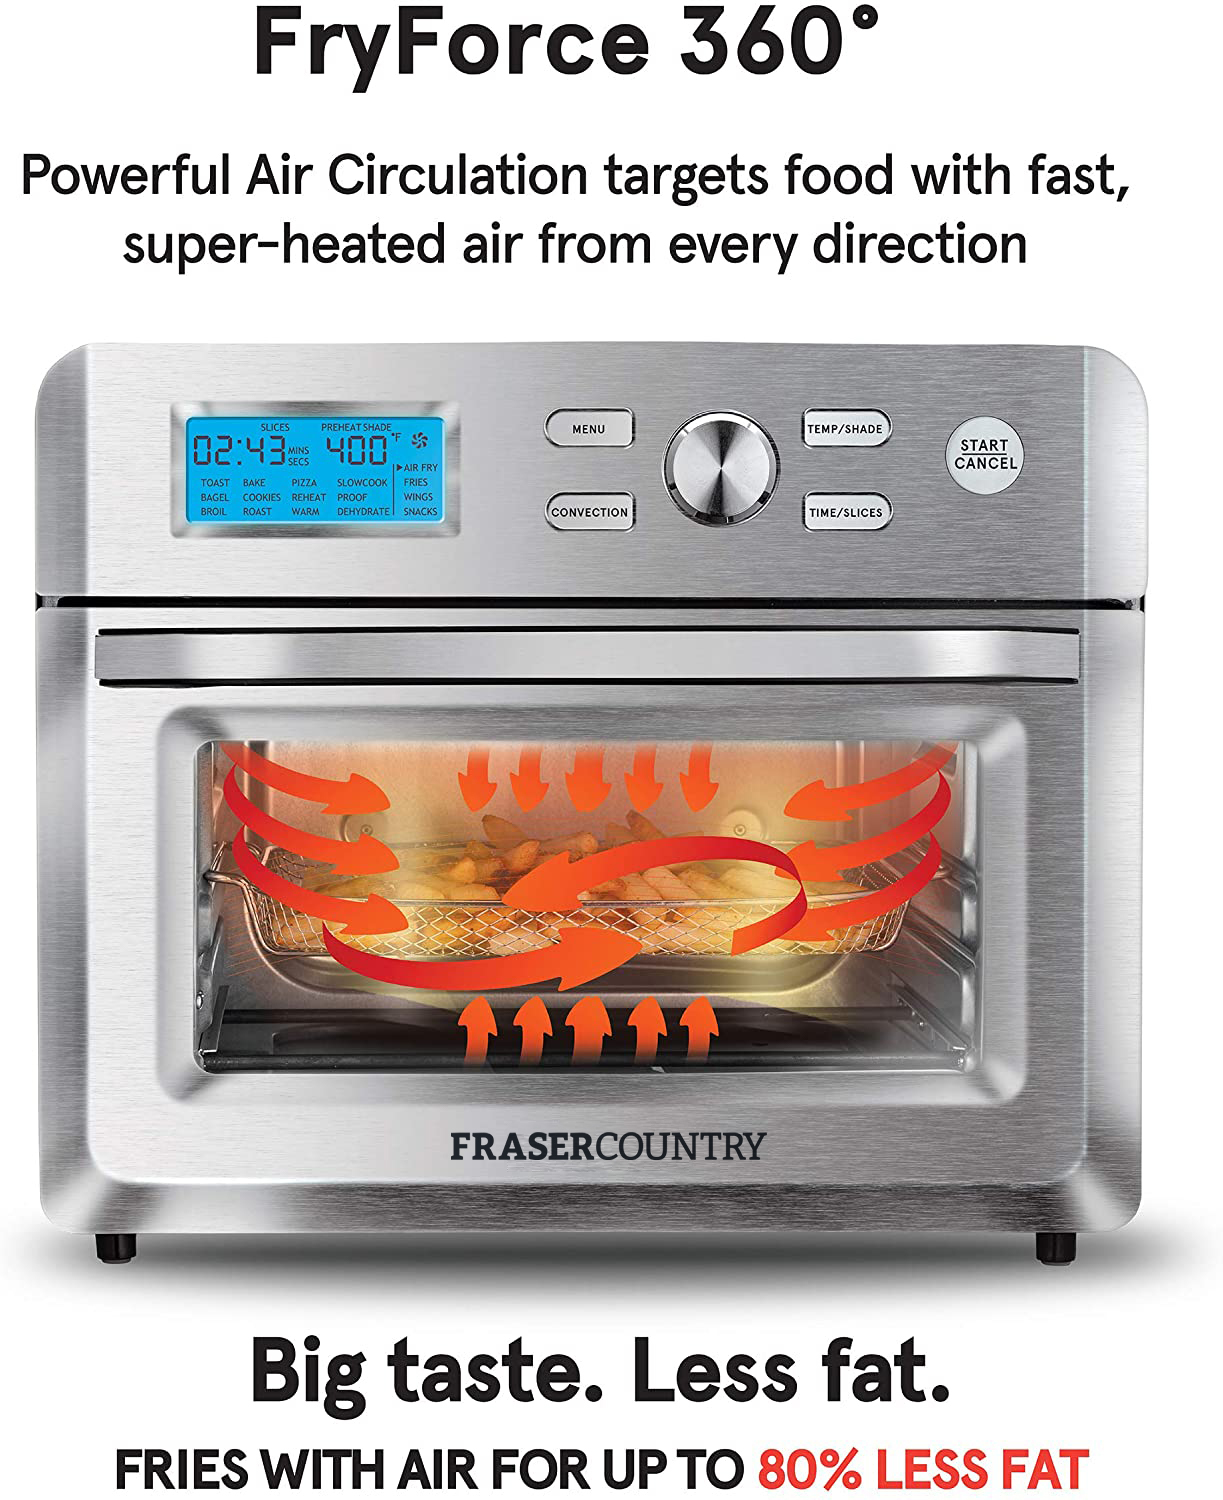 Fraser Country 18L Premium Air Fryer Toaster Oven 1600W image